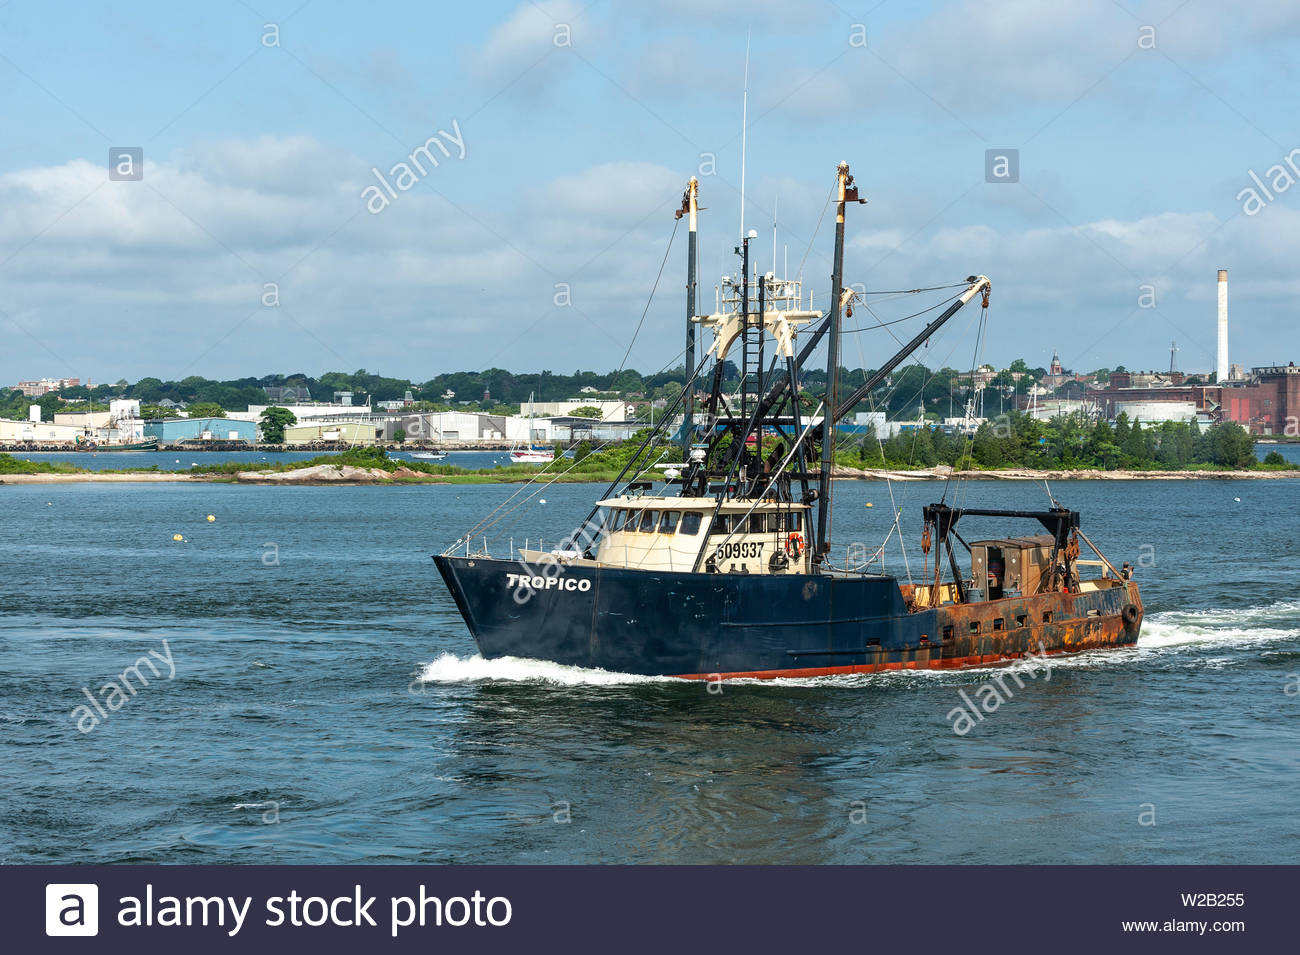 New Bedford, Massachusetts, USA - July 6, 2019: Commercial fishing